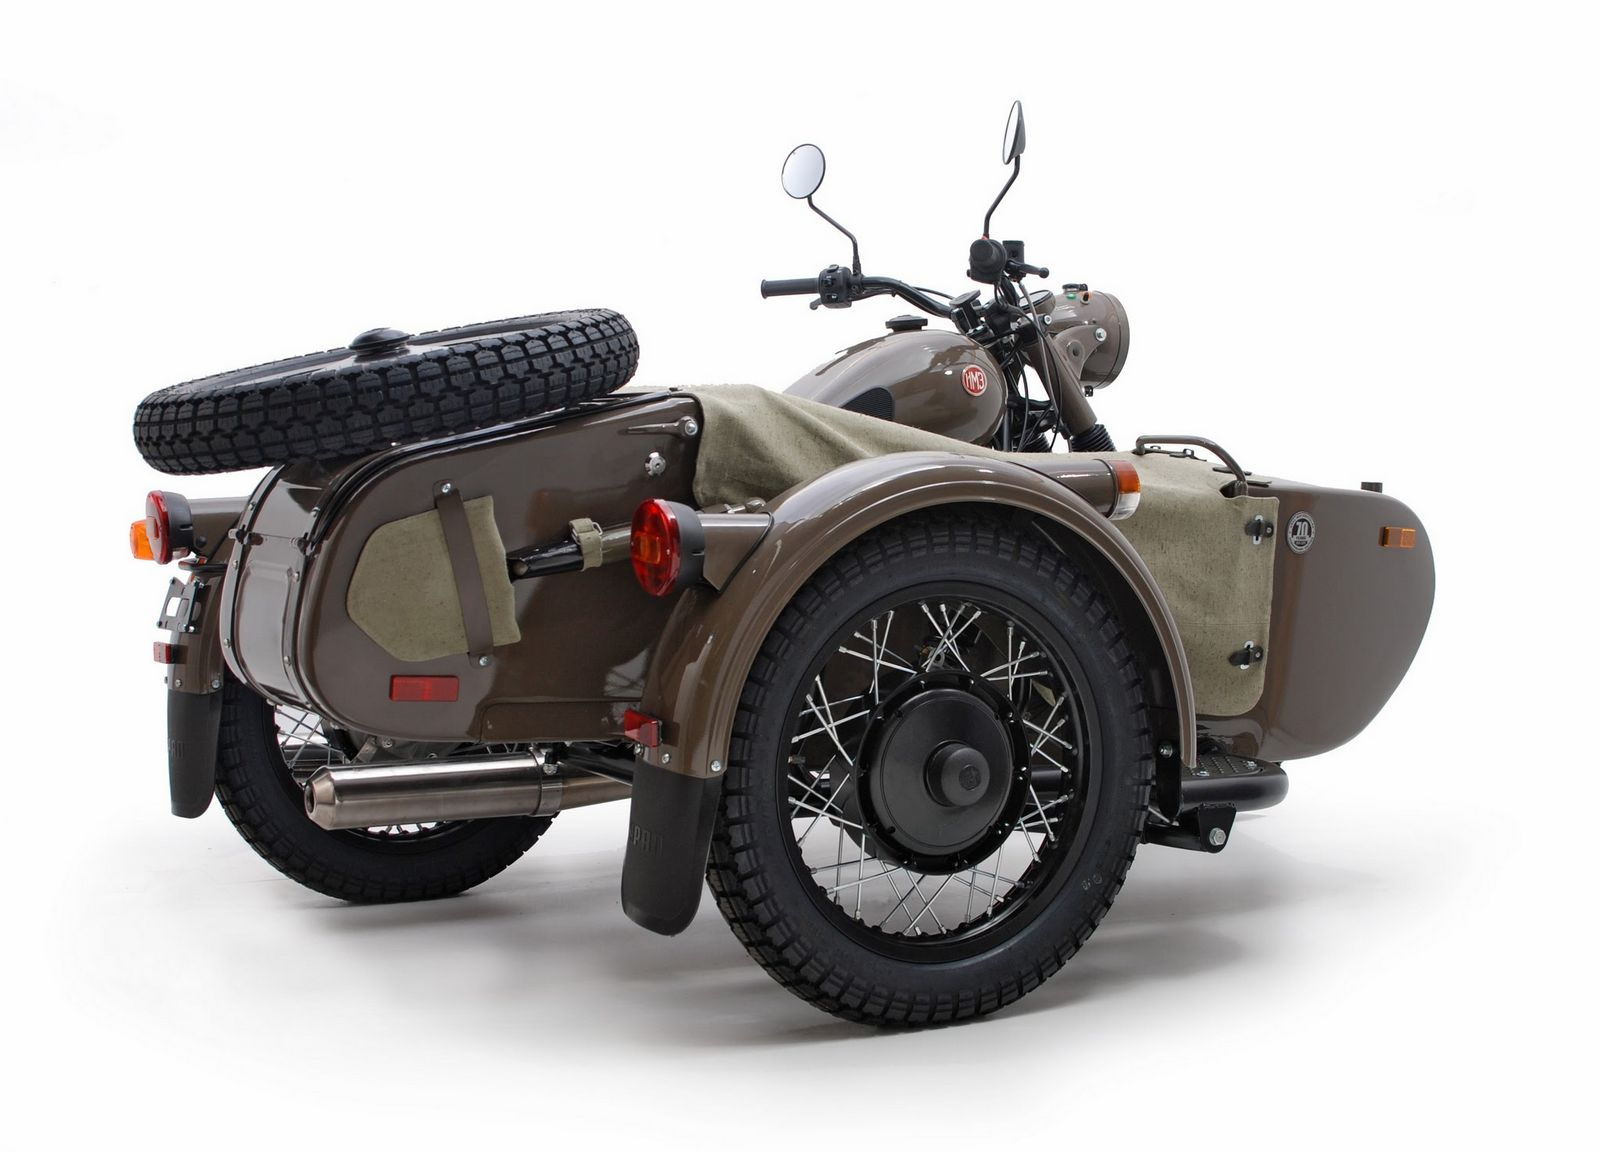 Ural M 66 with sidecar 1974 images #127374